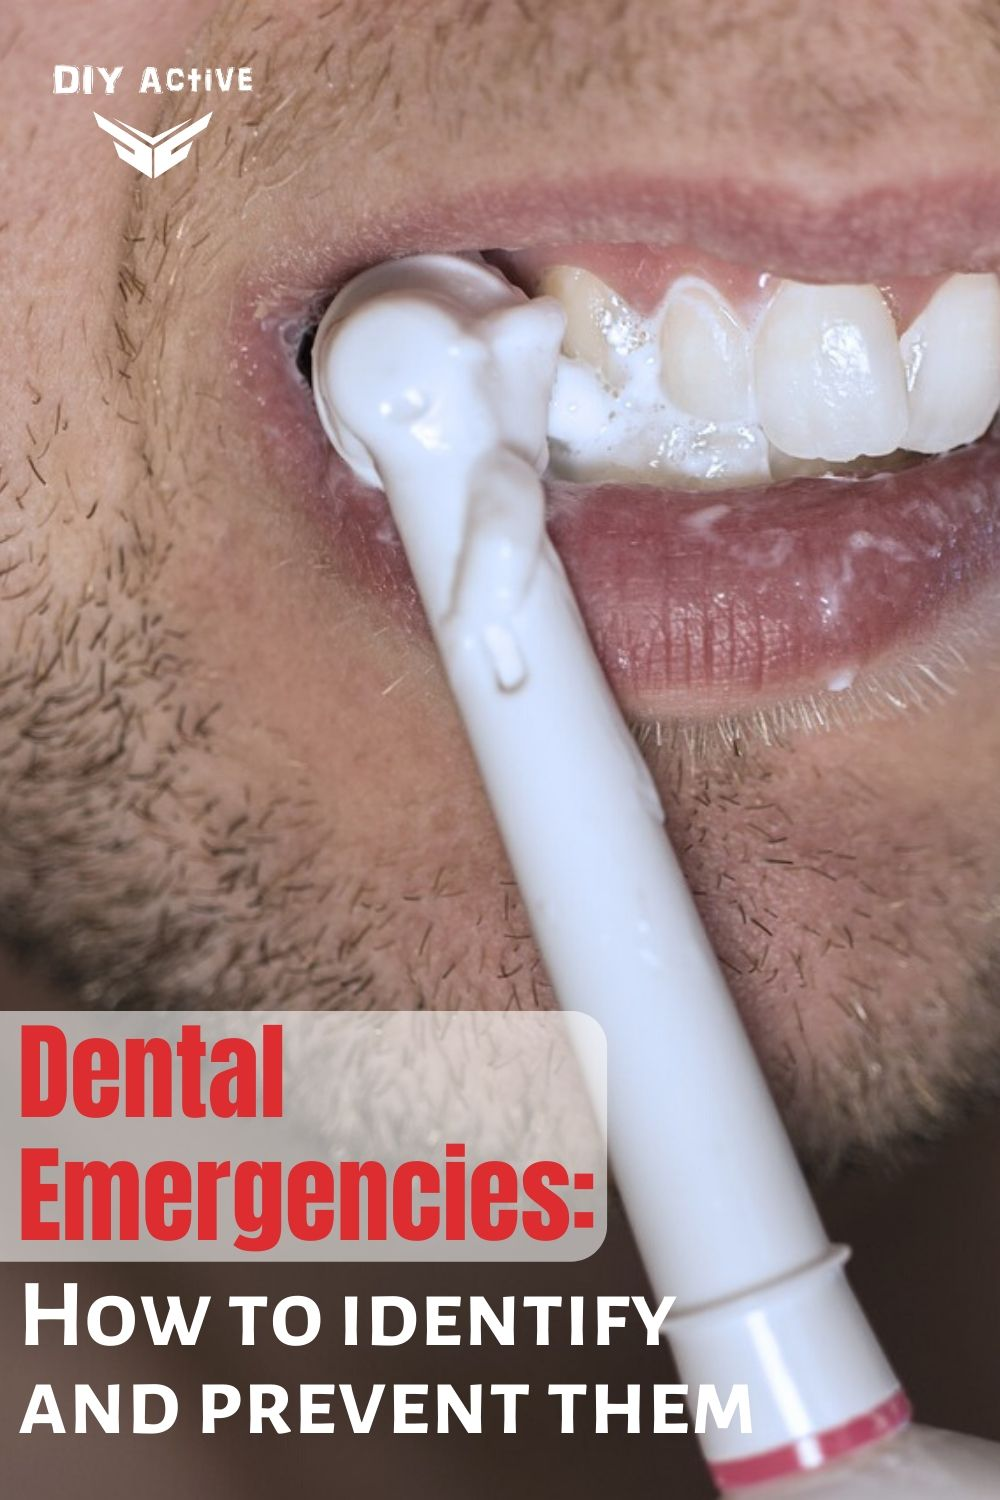 Dental Emergencies: How To Identify And Prevent Them